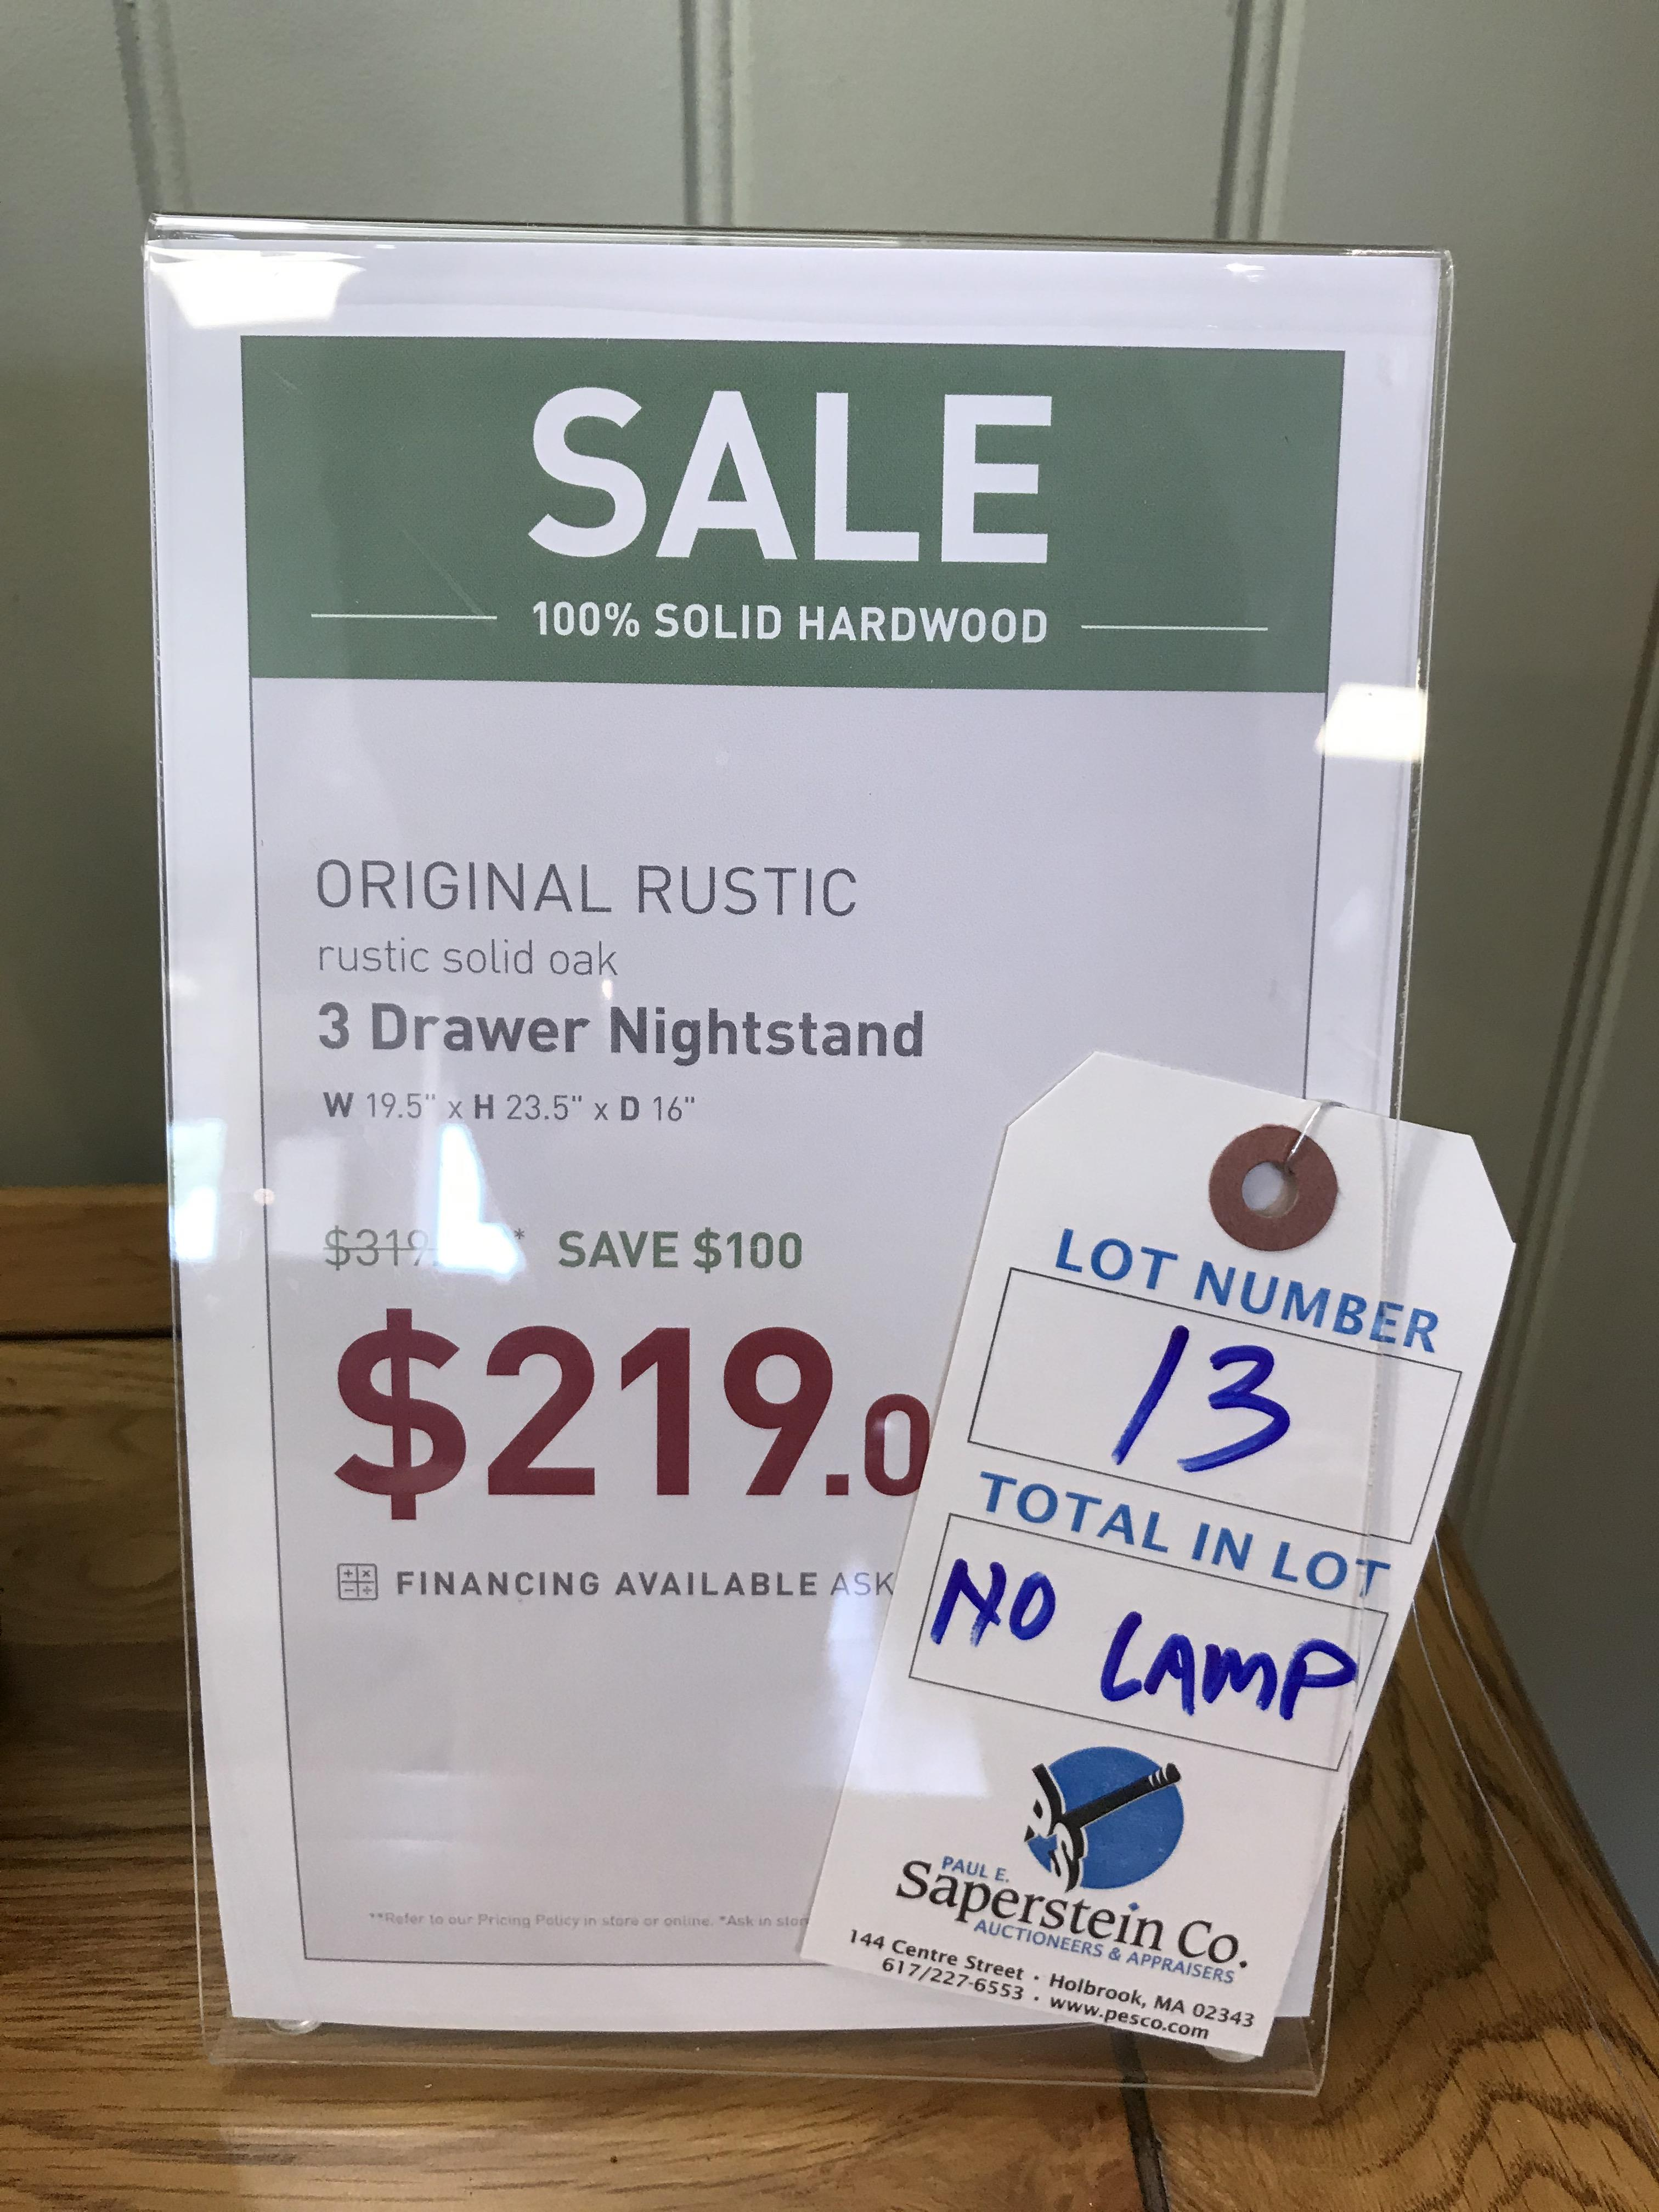 3 Drawer Nightstand (Original Rustic) See Picture For Dimensions and Product Info - Image 2 of 2